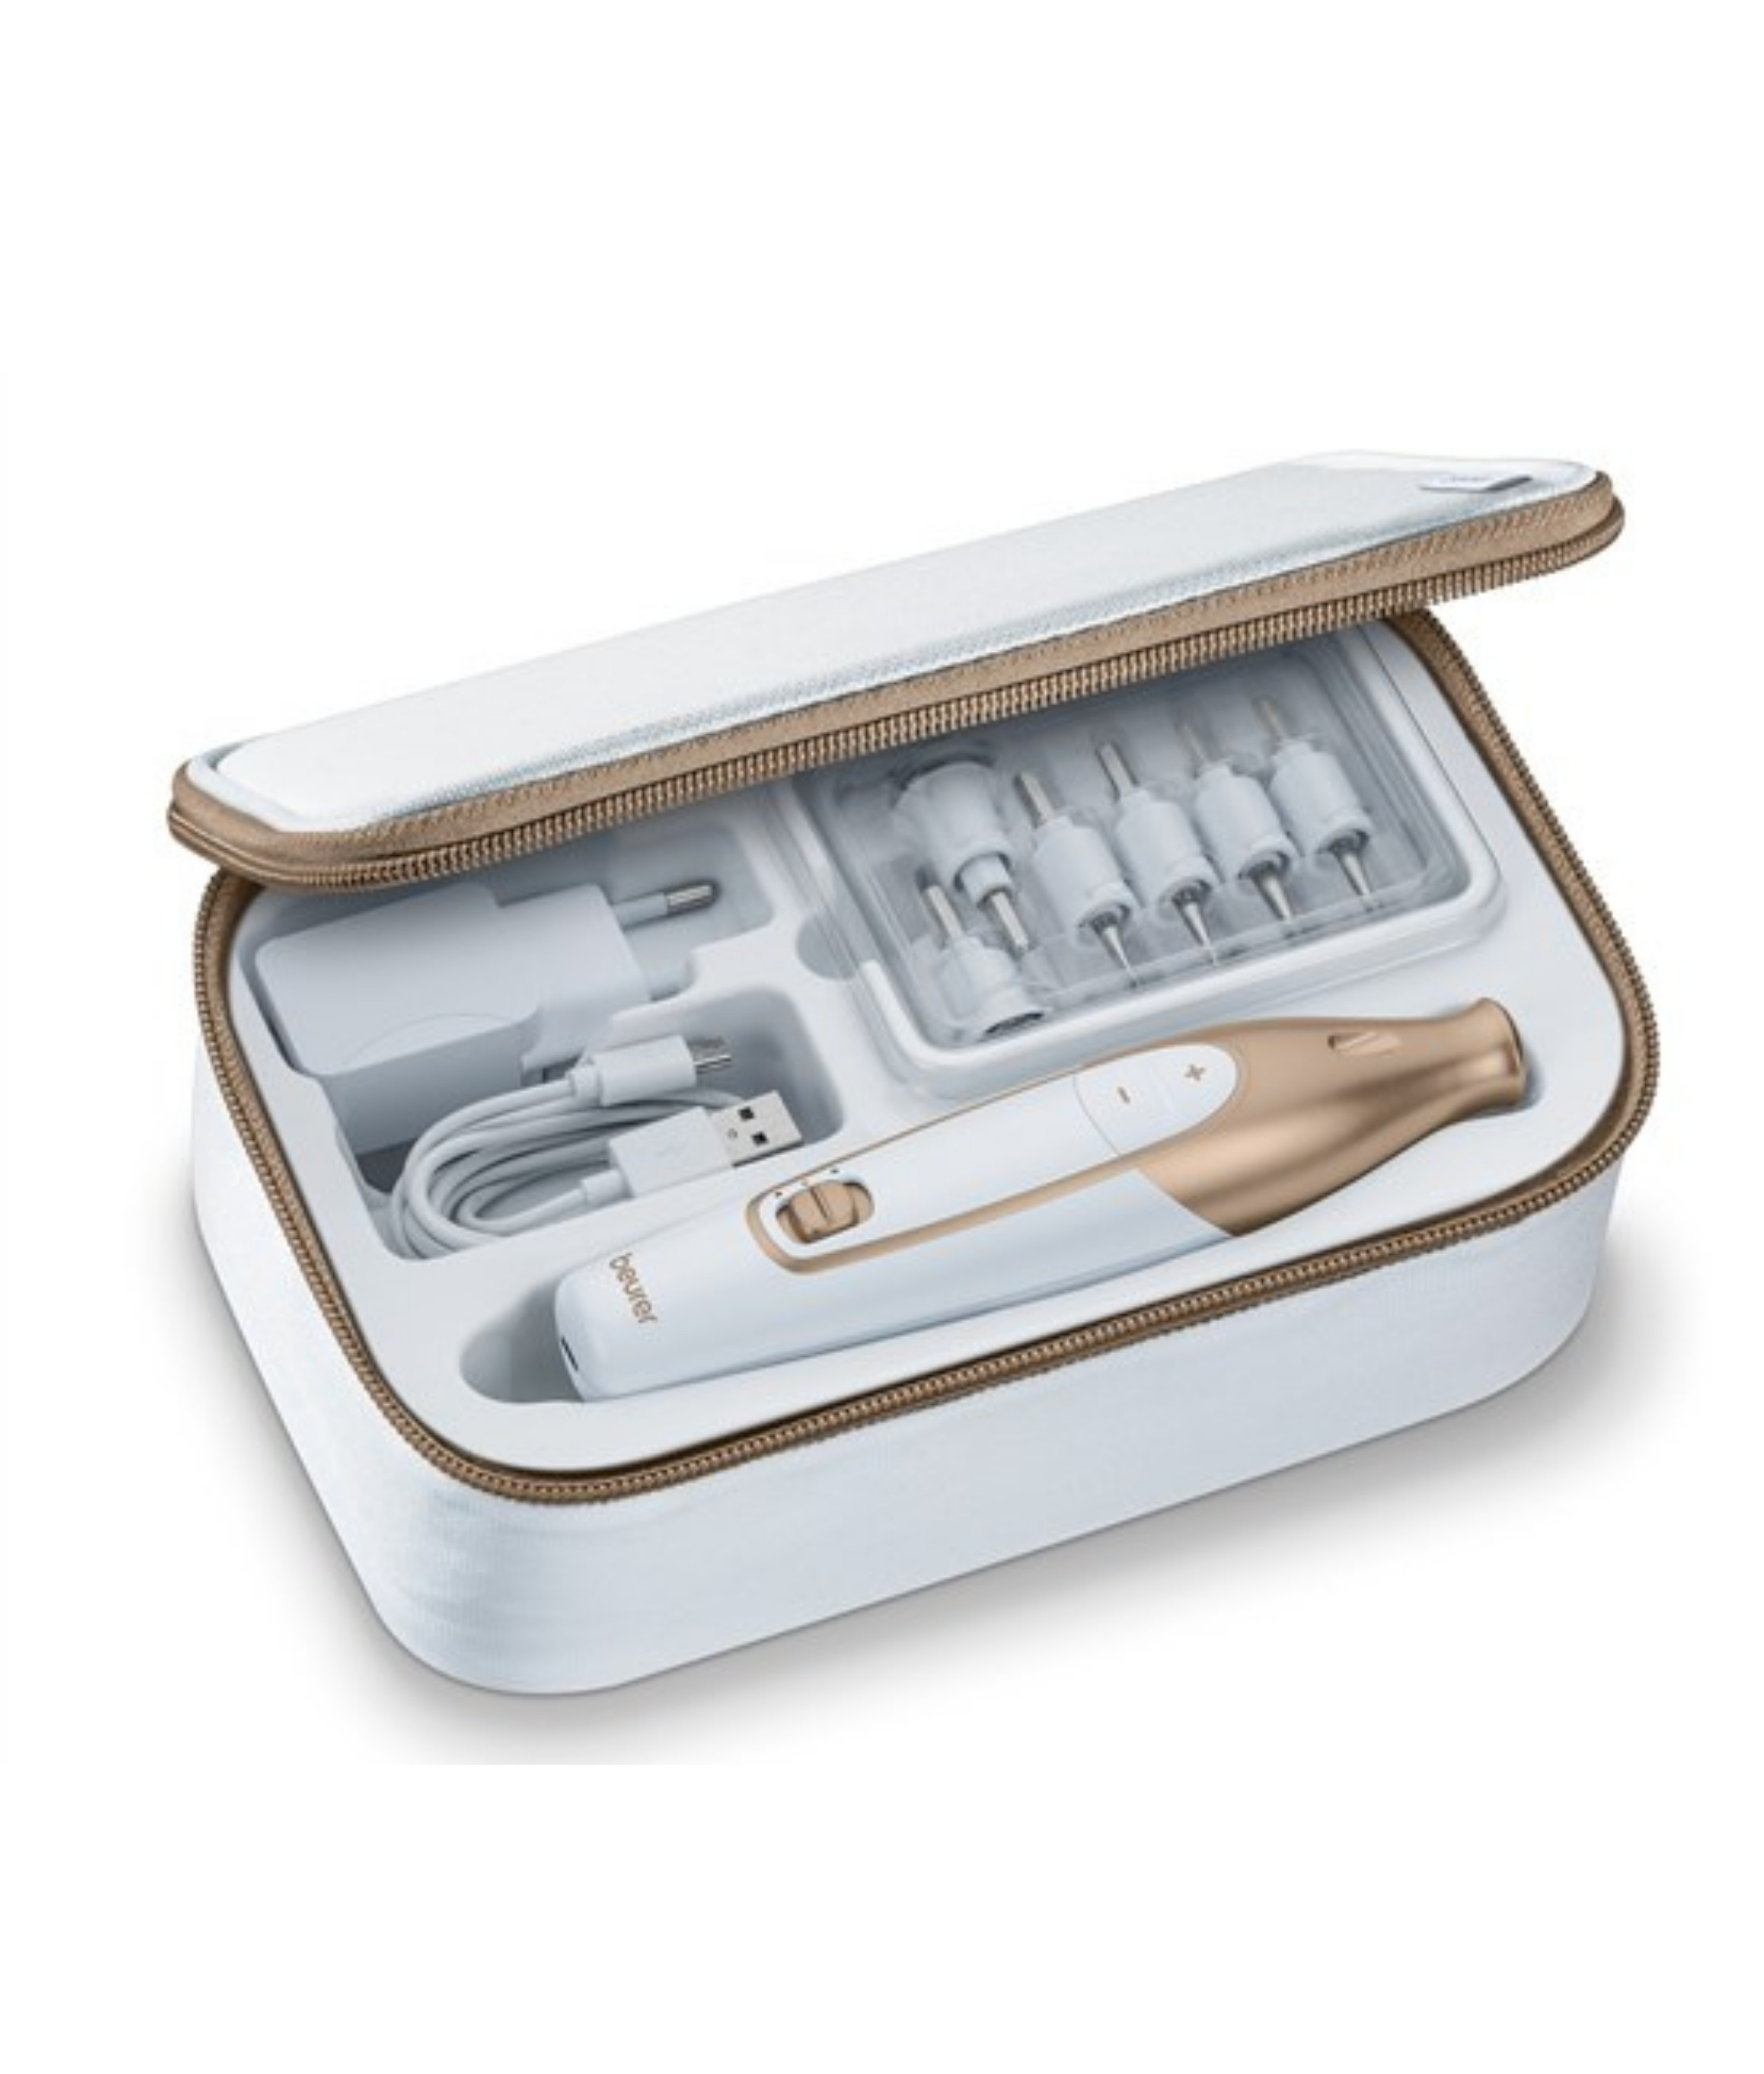 WIRELESS MANICURE AND PEDICURE SET